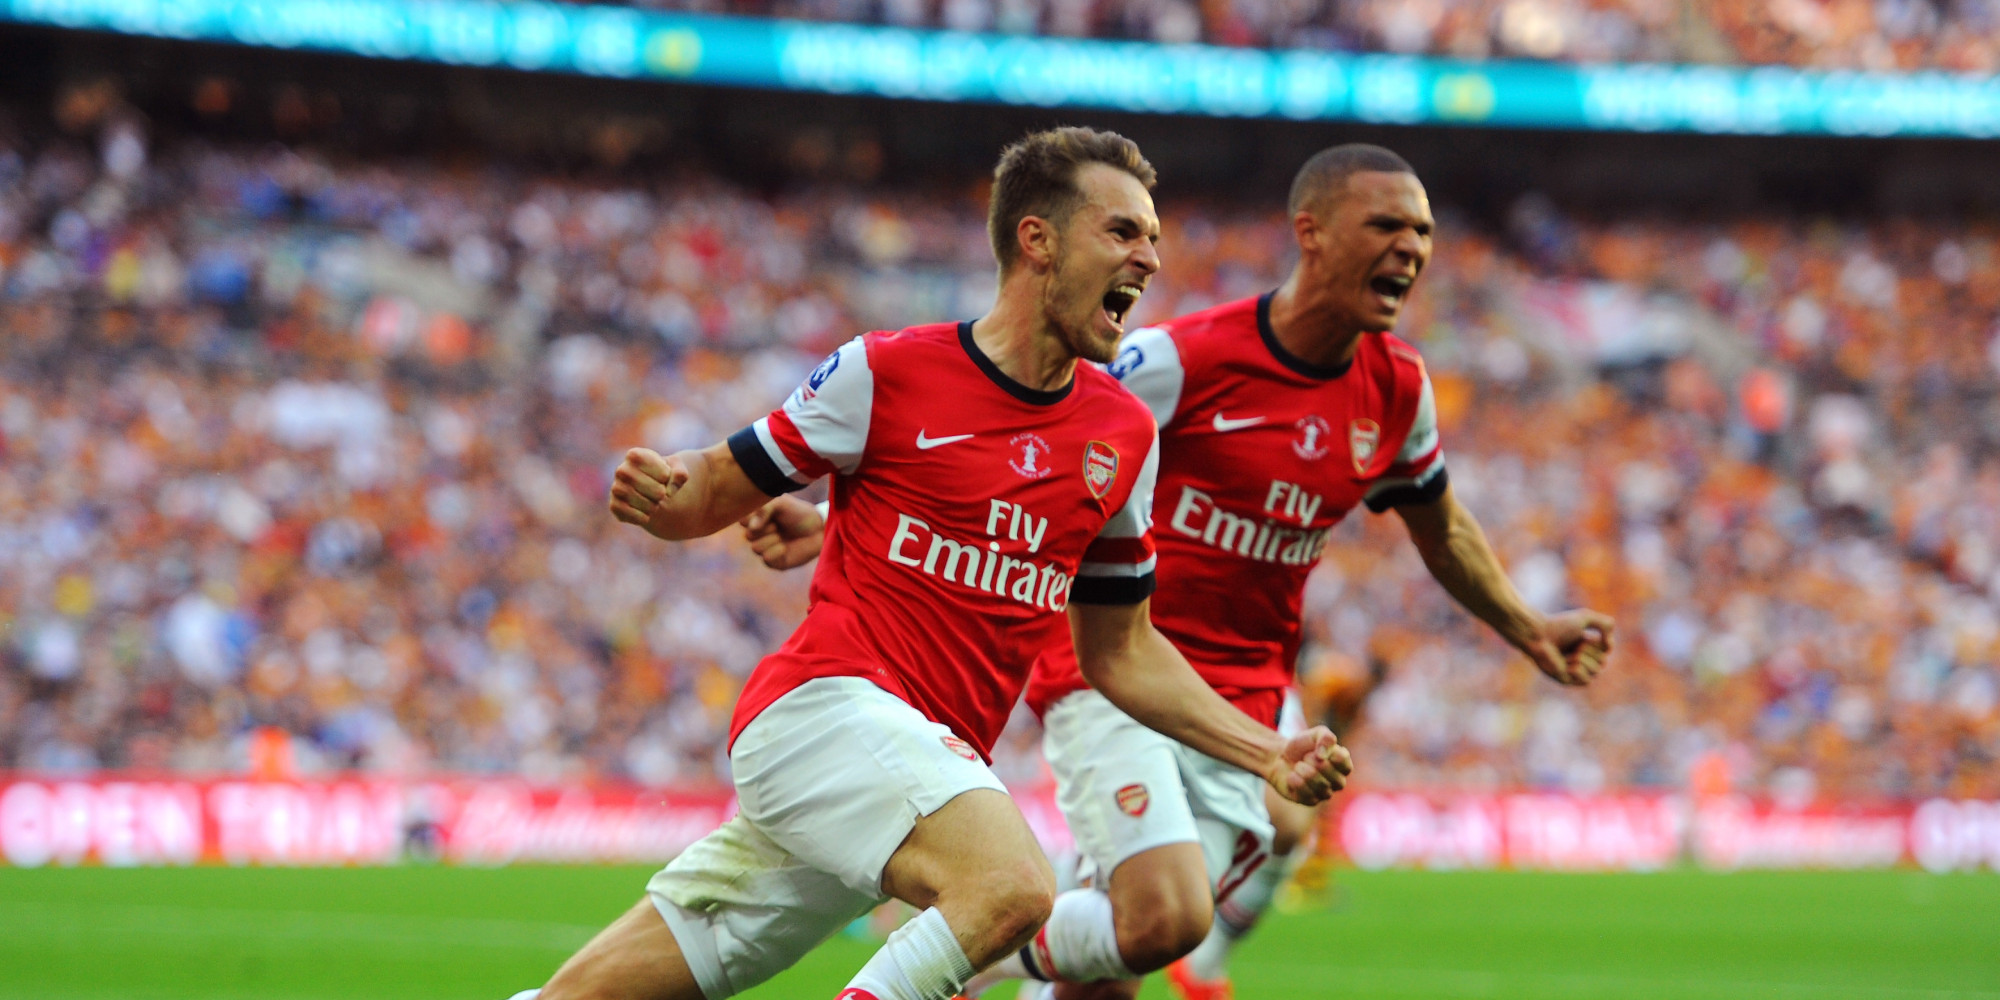 Image result for ramsey v hull